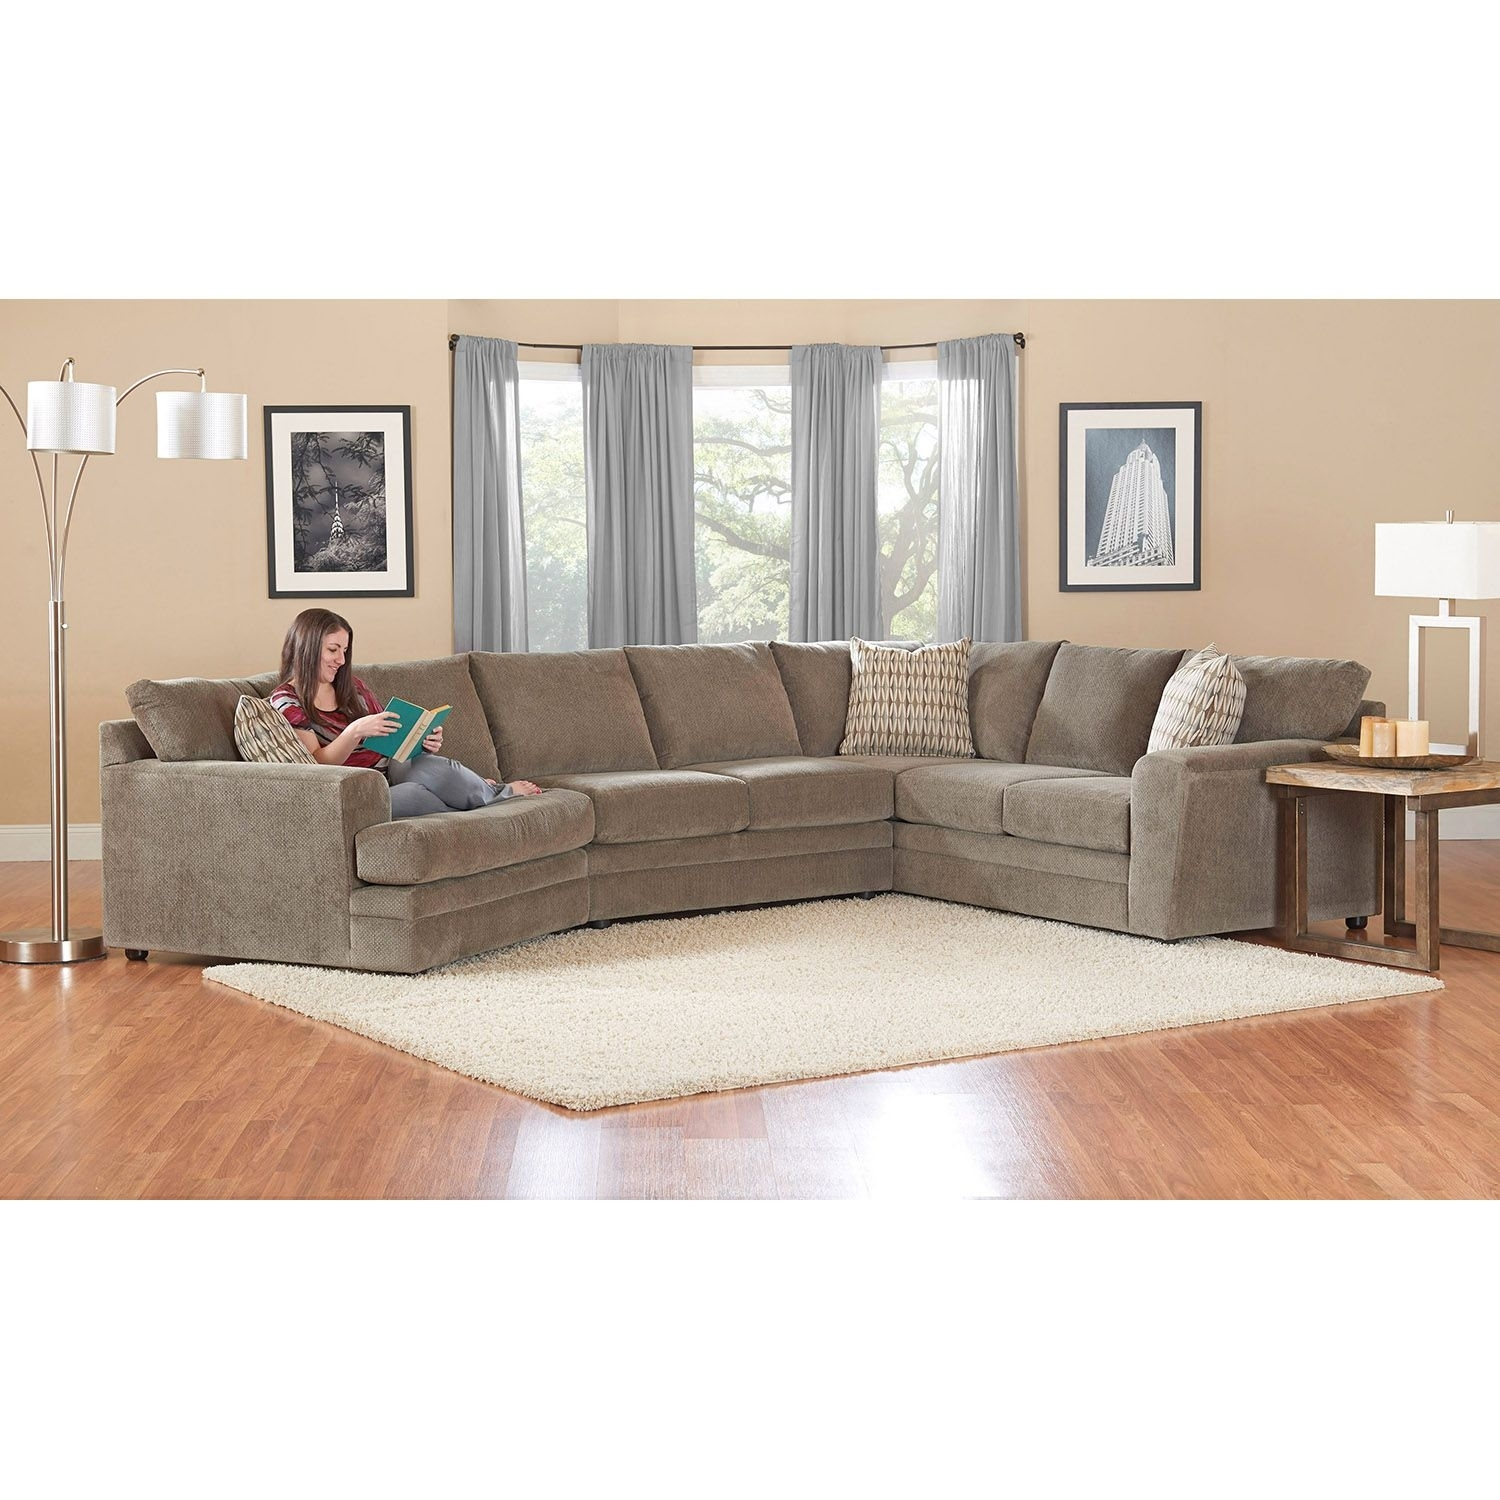 Featured Image of Sams Club Sectional Sofas